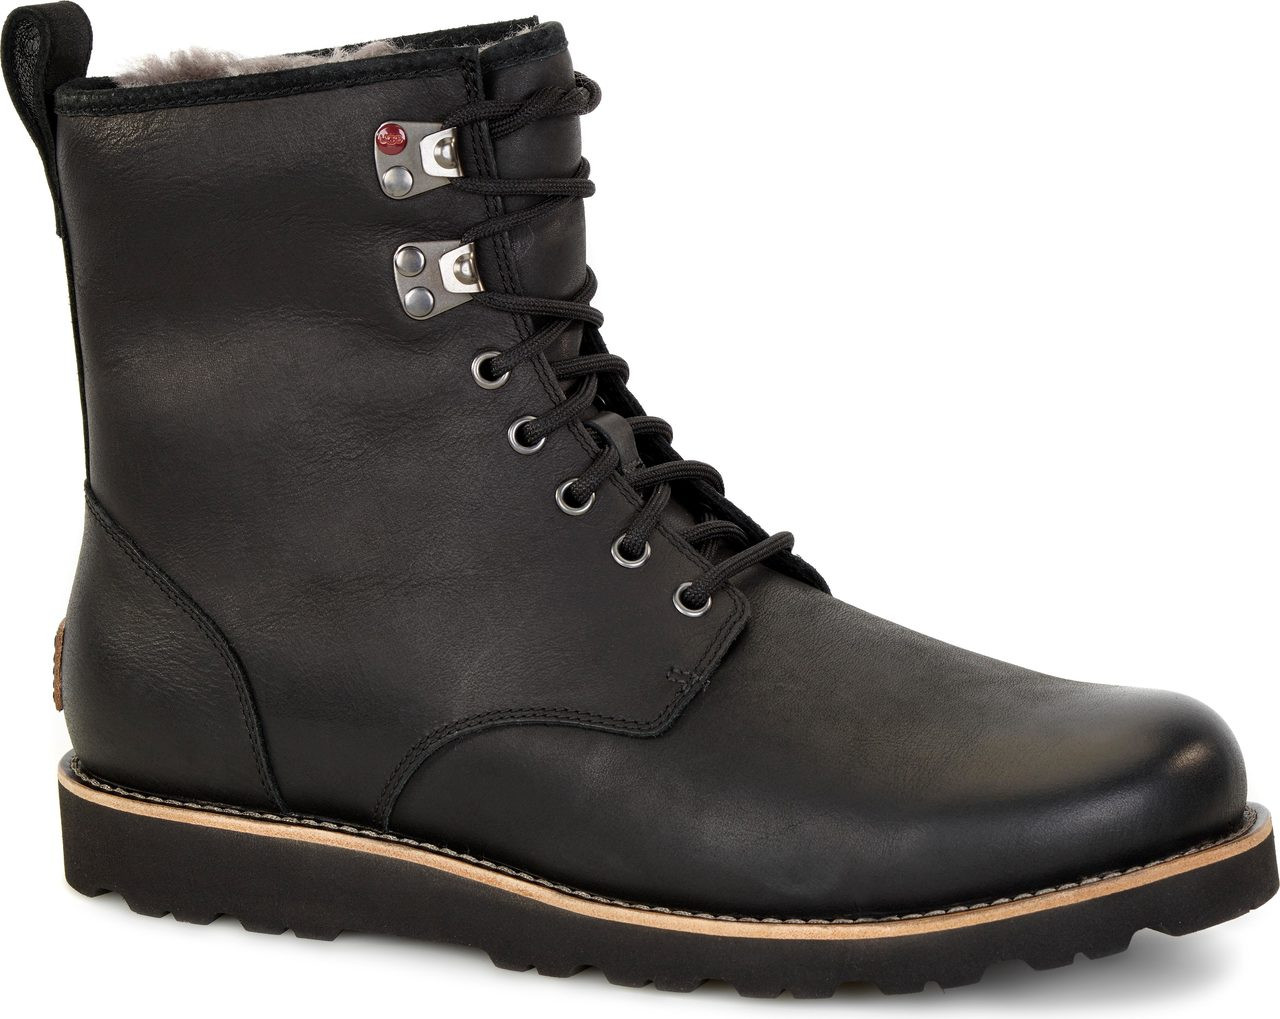 Ugg black for men boots new photo